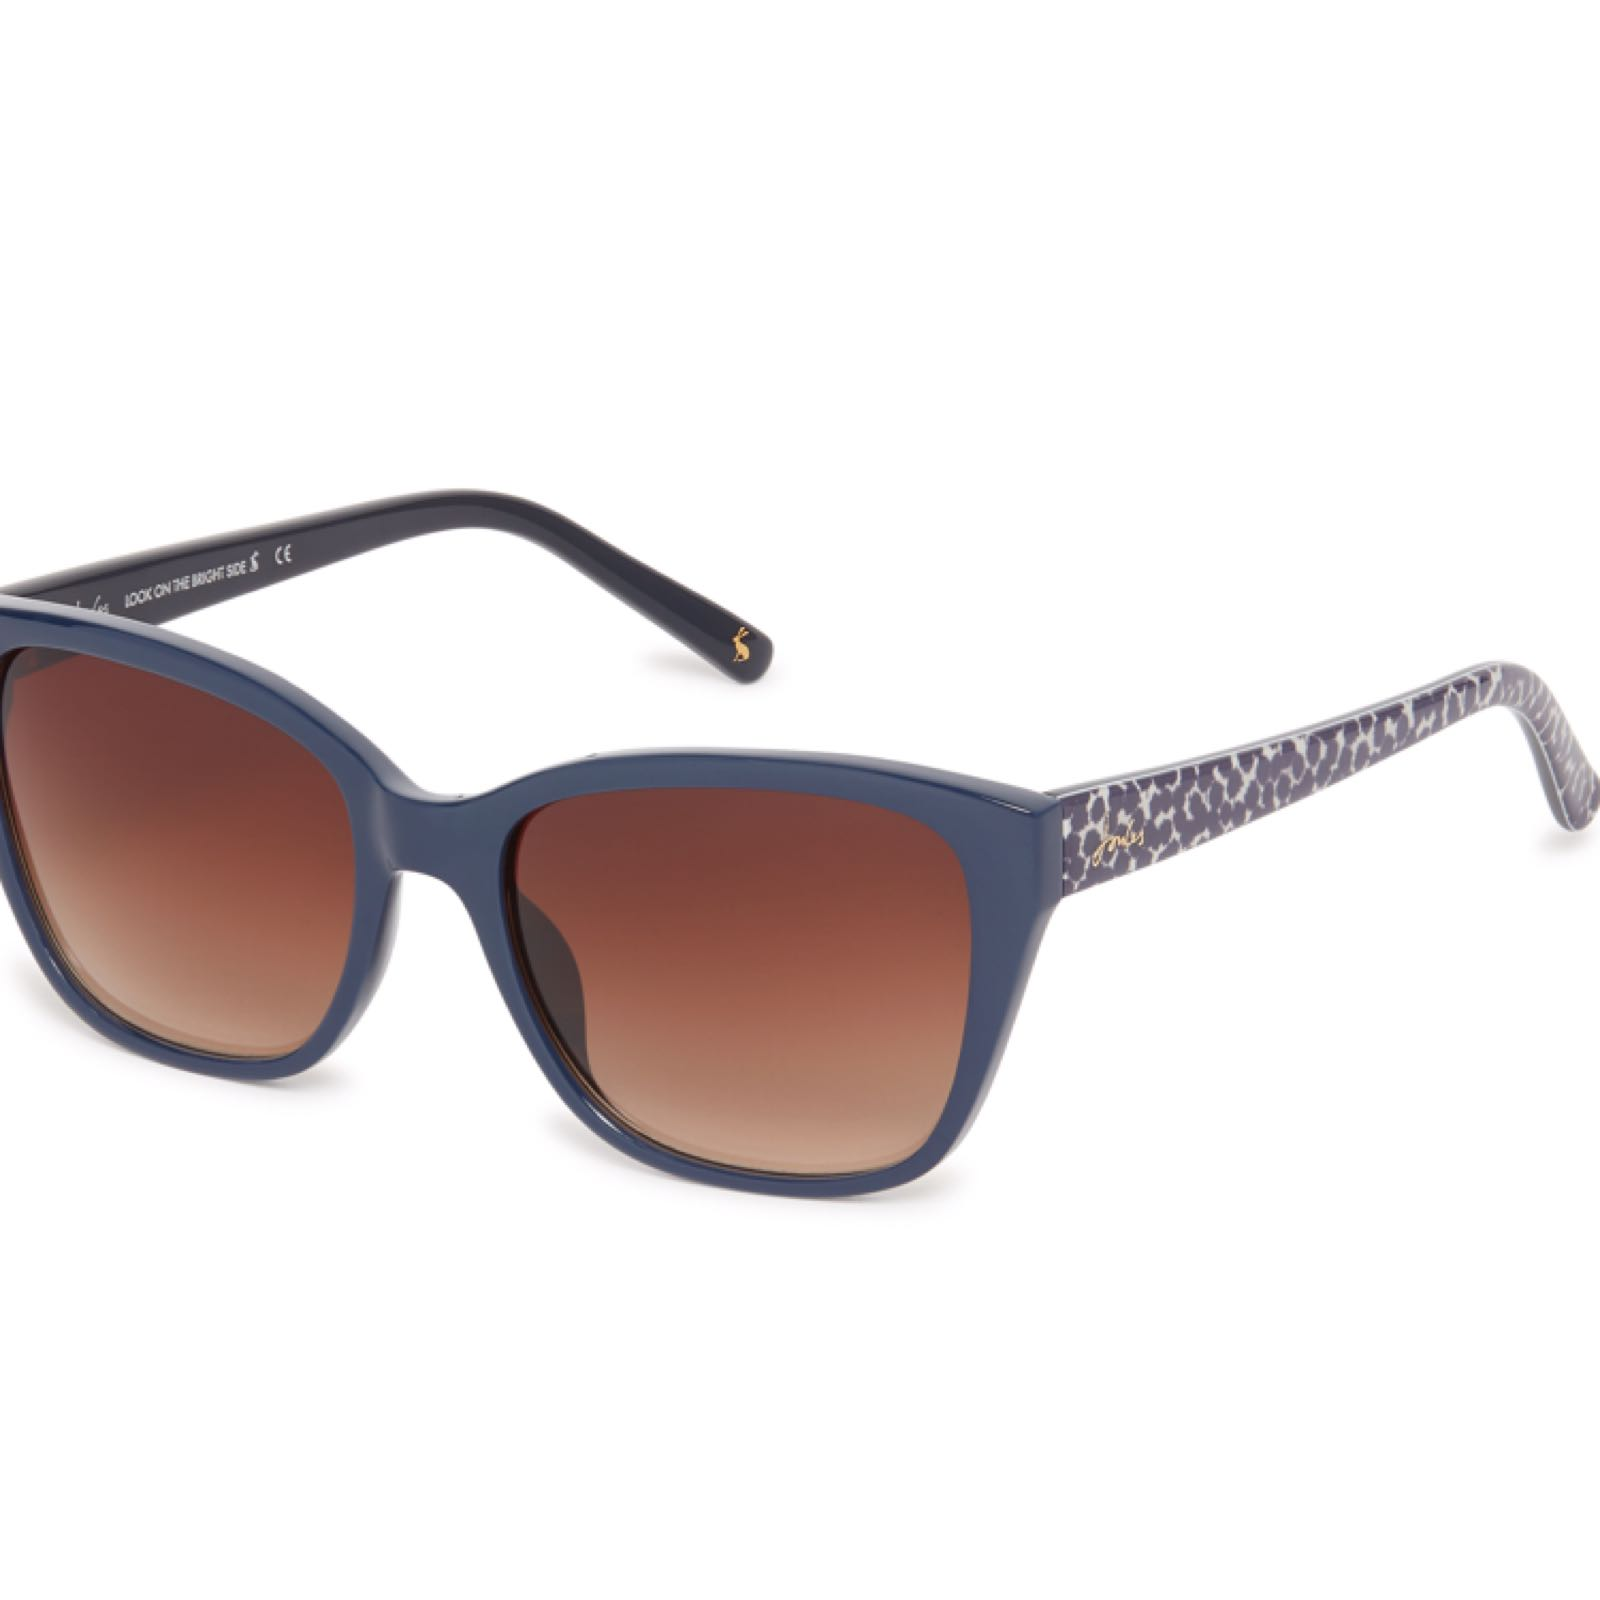 Joules navy sunglasses